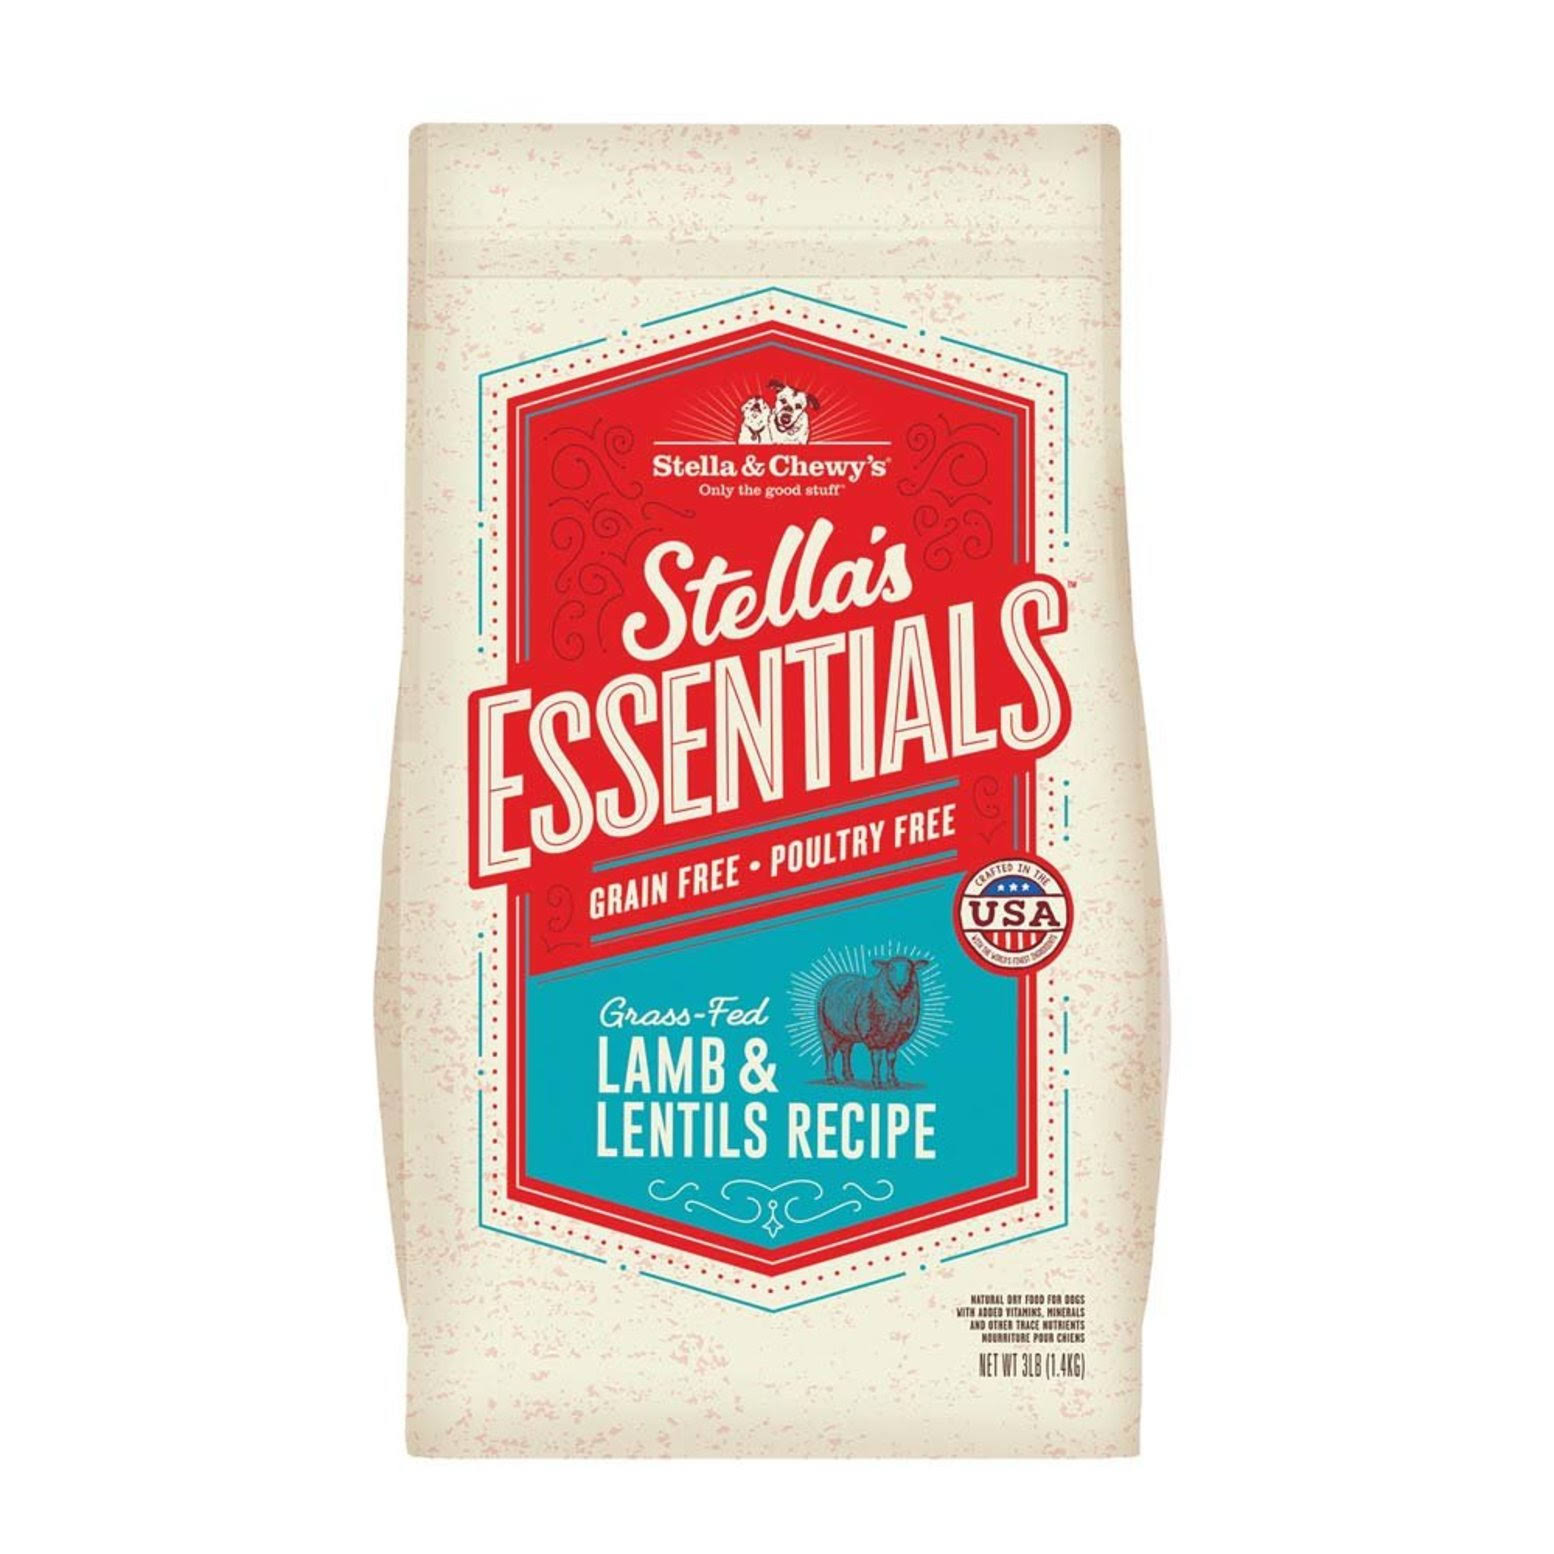 Stella & Chewy's Essentials Grain Free Grass-Fed Lamb & Lentils Dog Food 3-lb